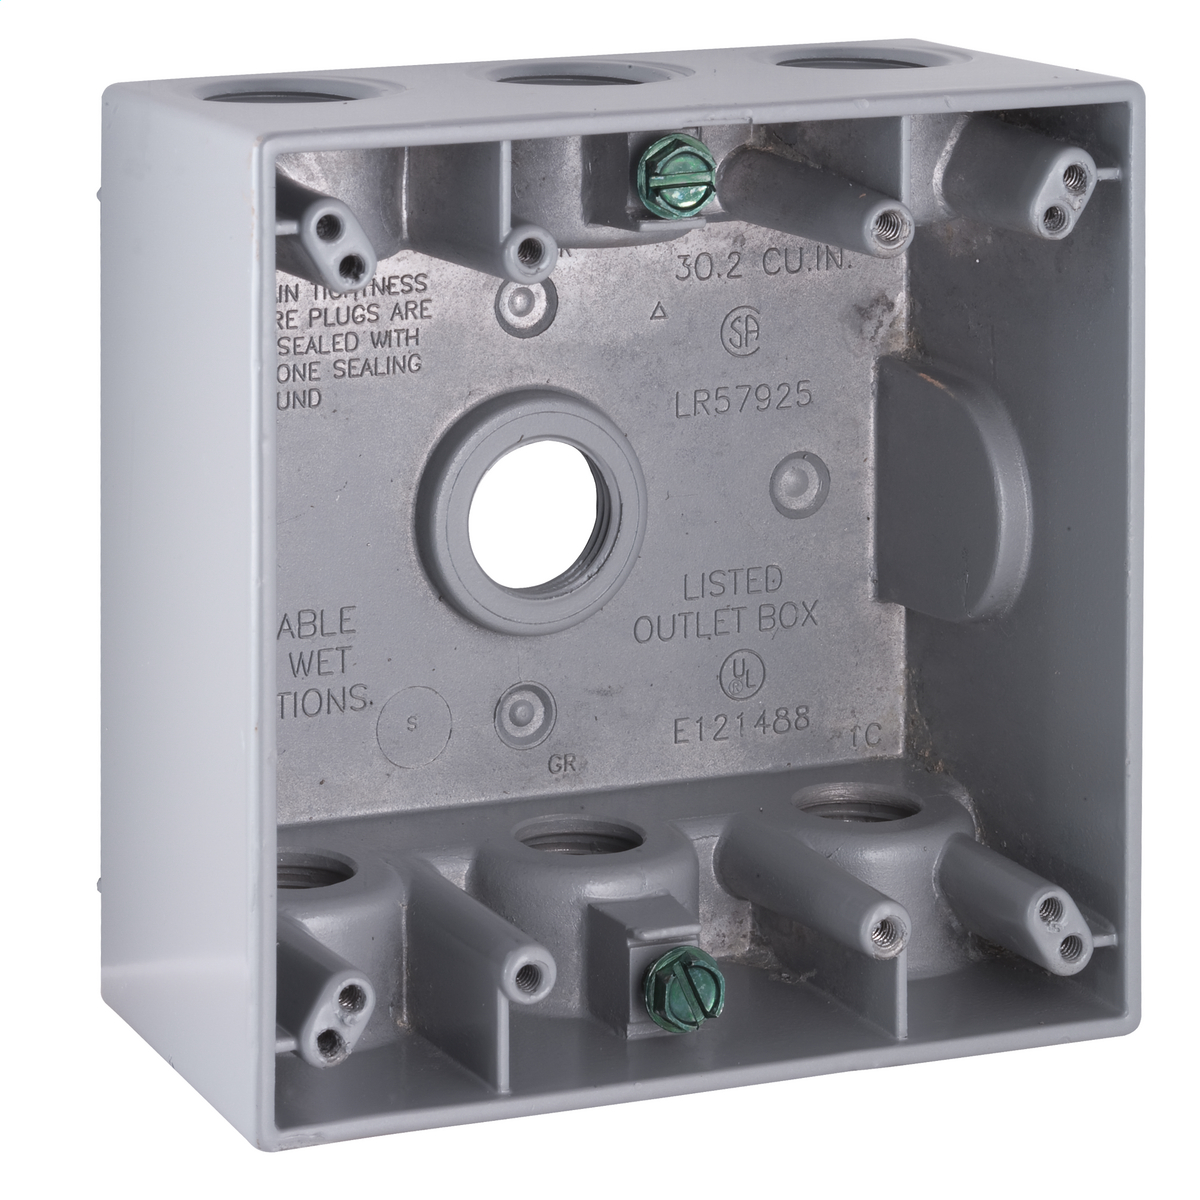 2G WP BOX (7) 1/2 IN. OUTLETS GRY CARDED